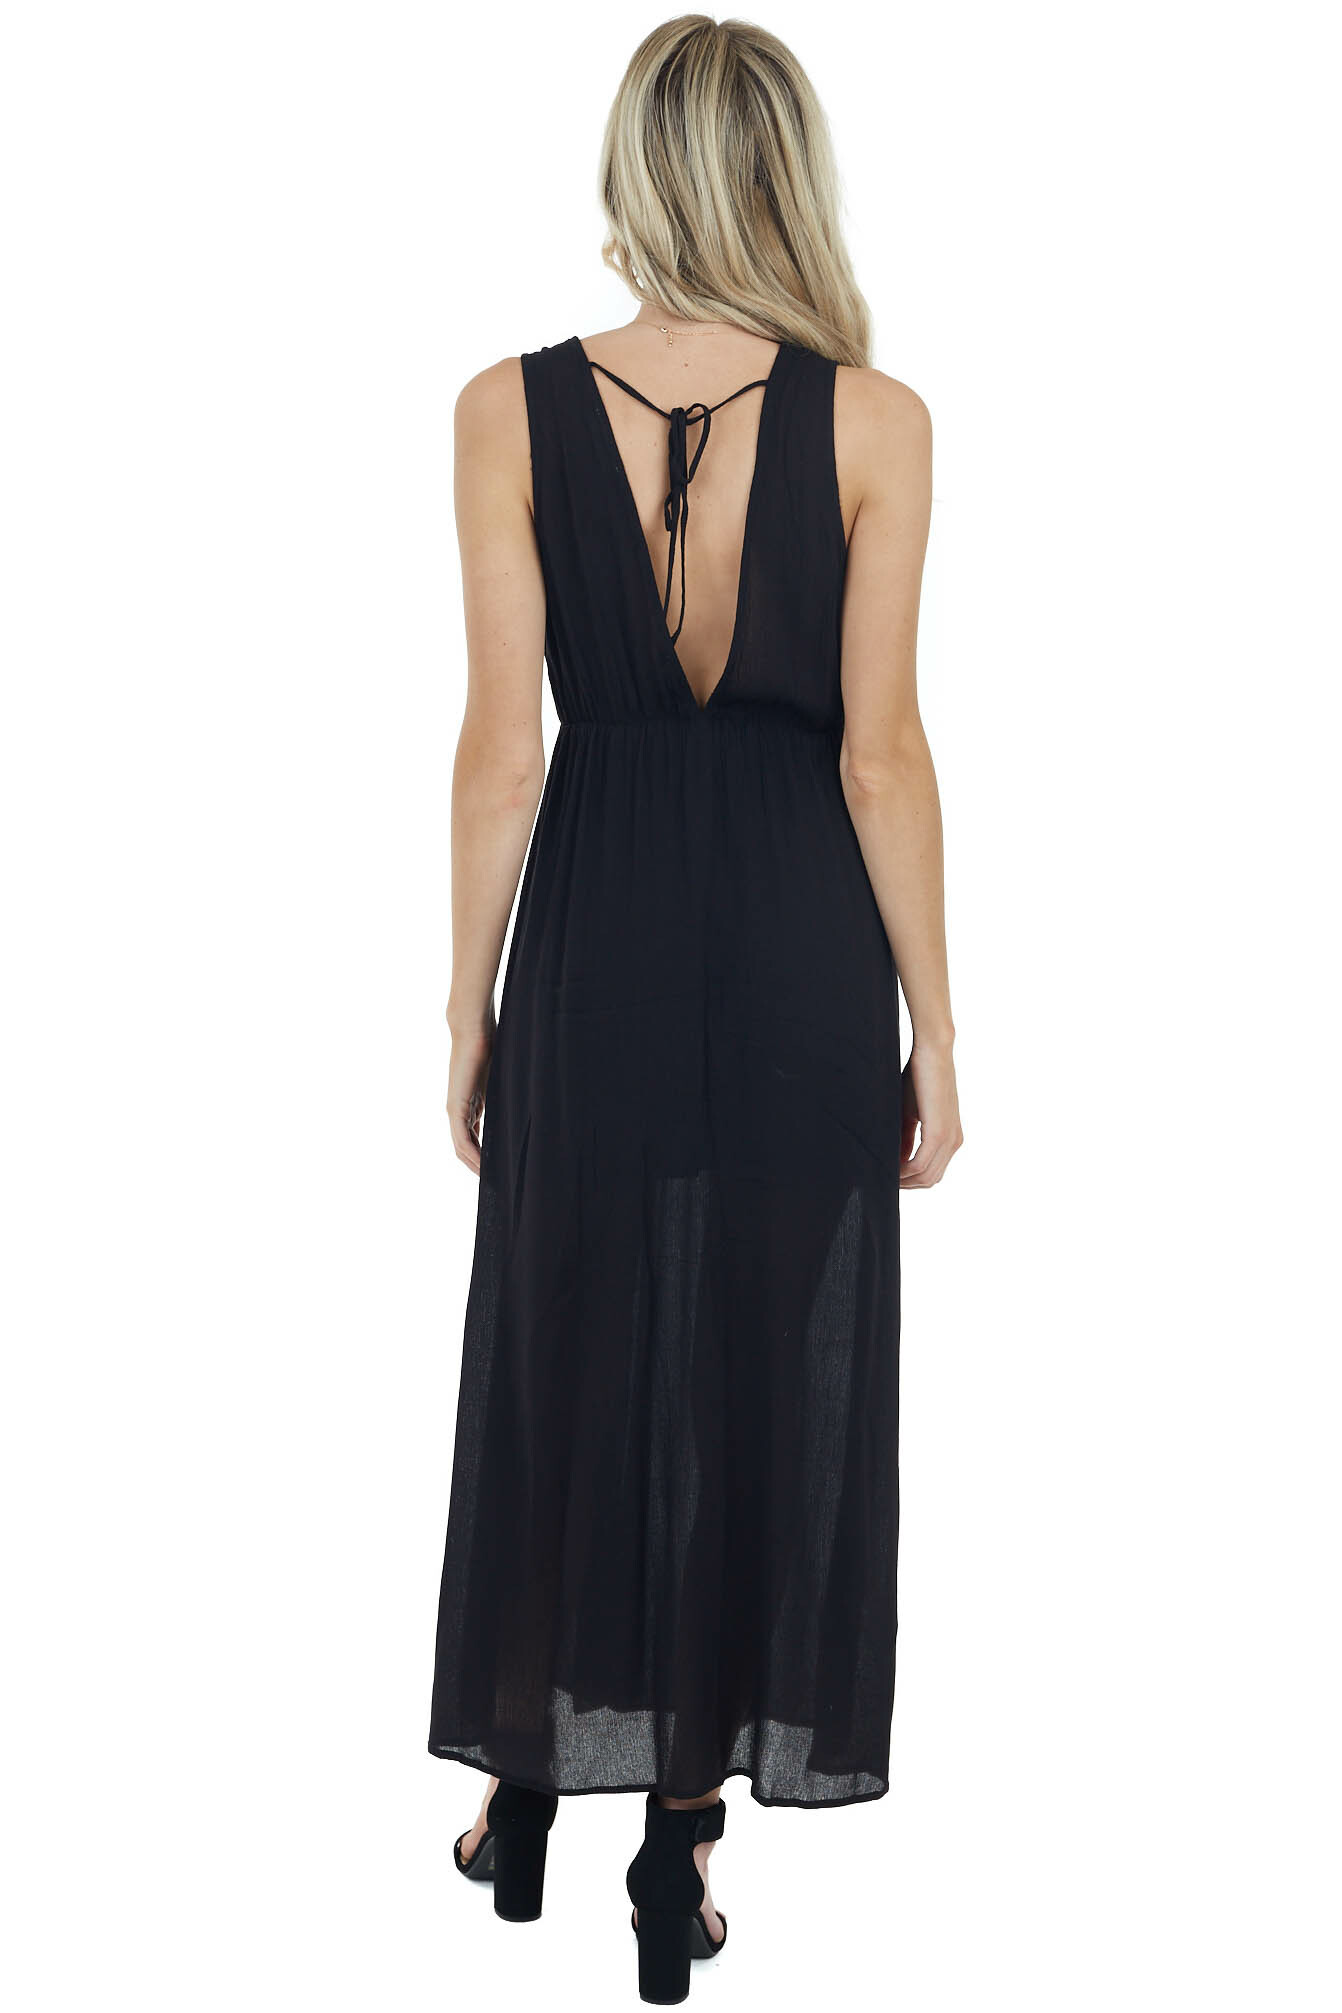 Black Sleeveless Maxi Dress with Deep Side Slits and Lace